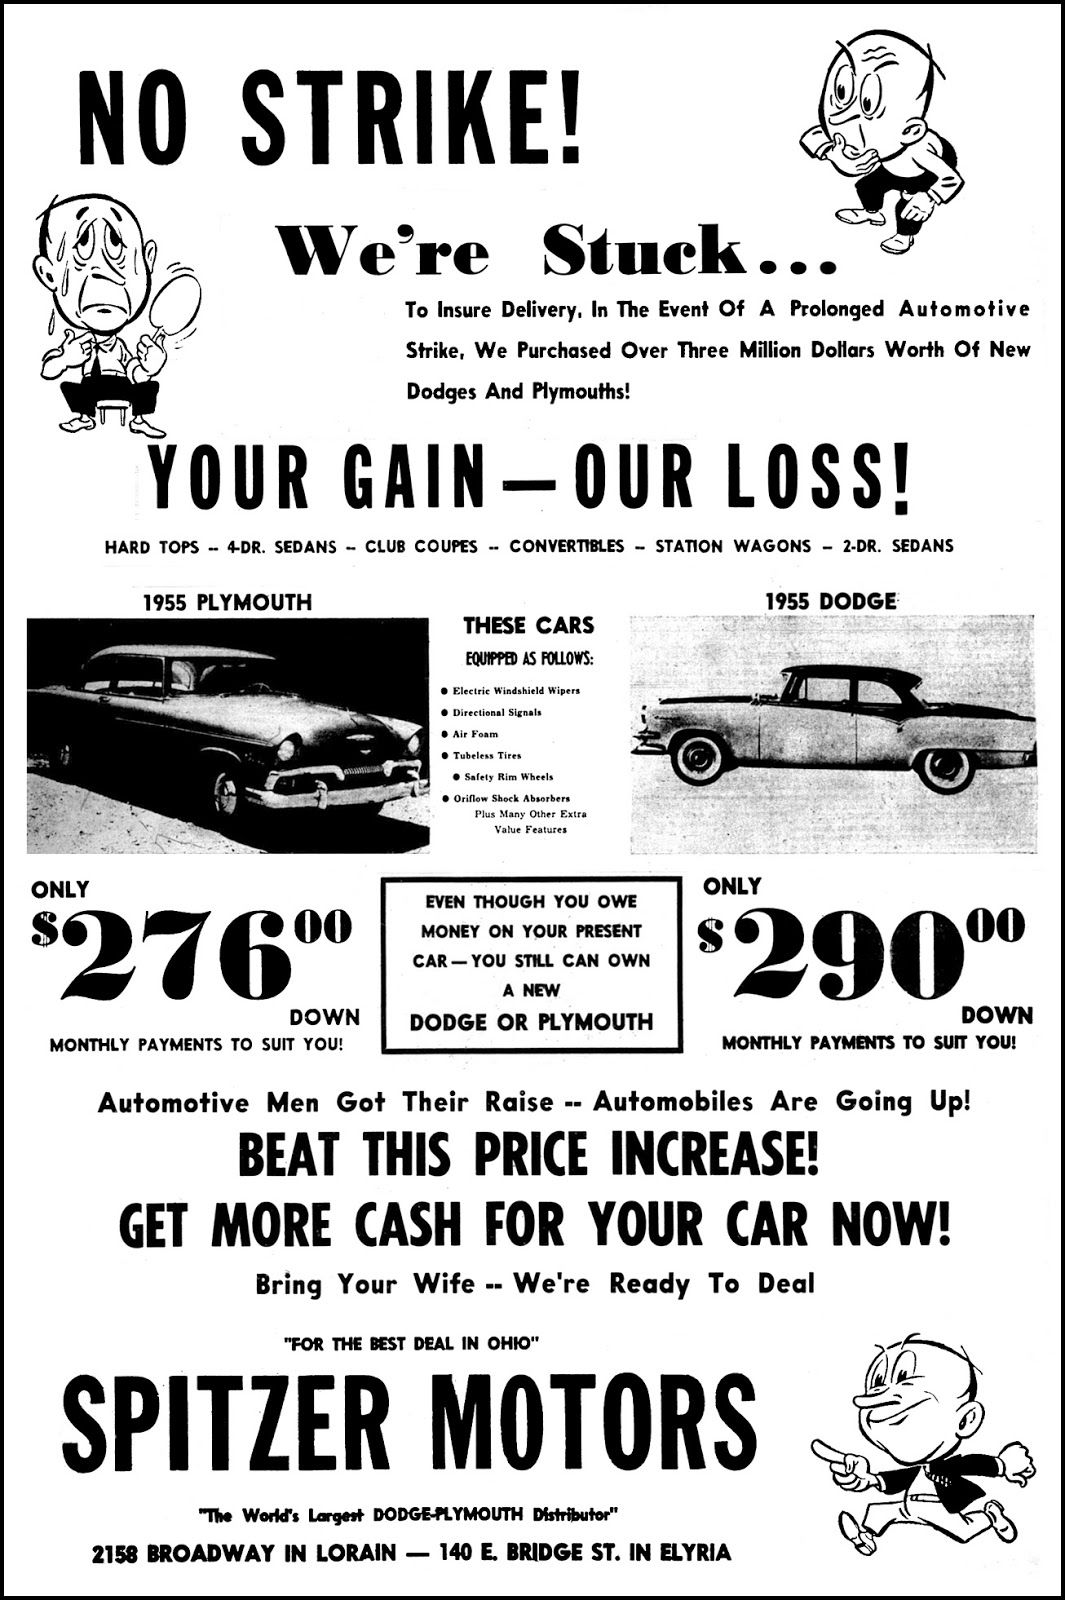 Pin by Dolly Peepers on Piston Diner 1950's ideas Dodge